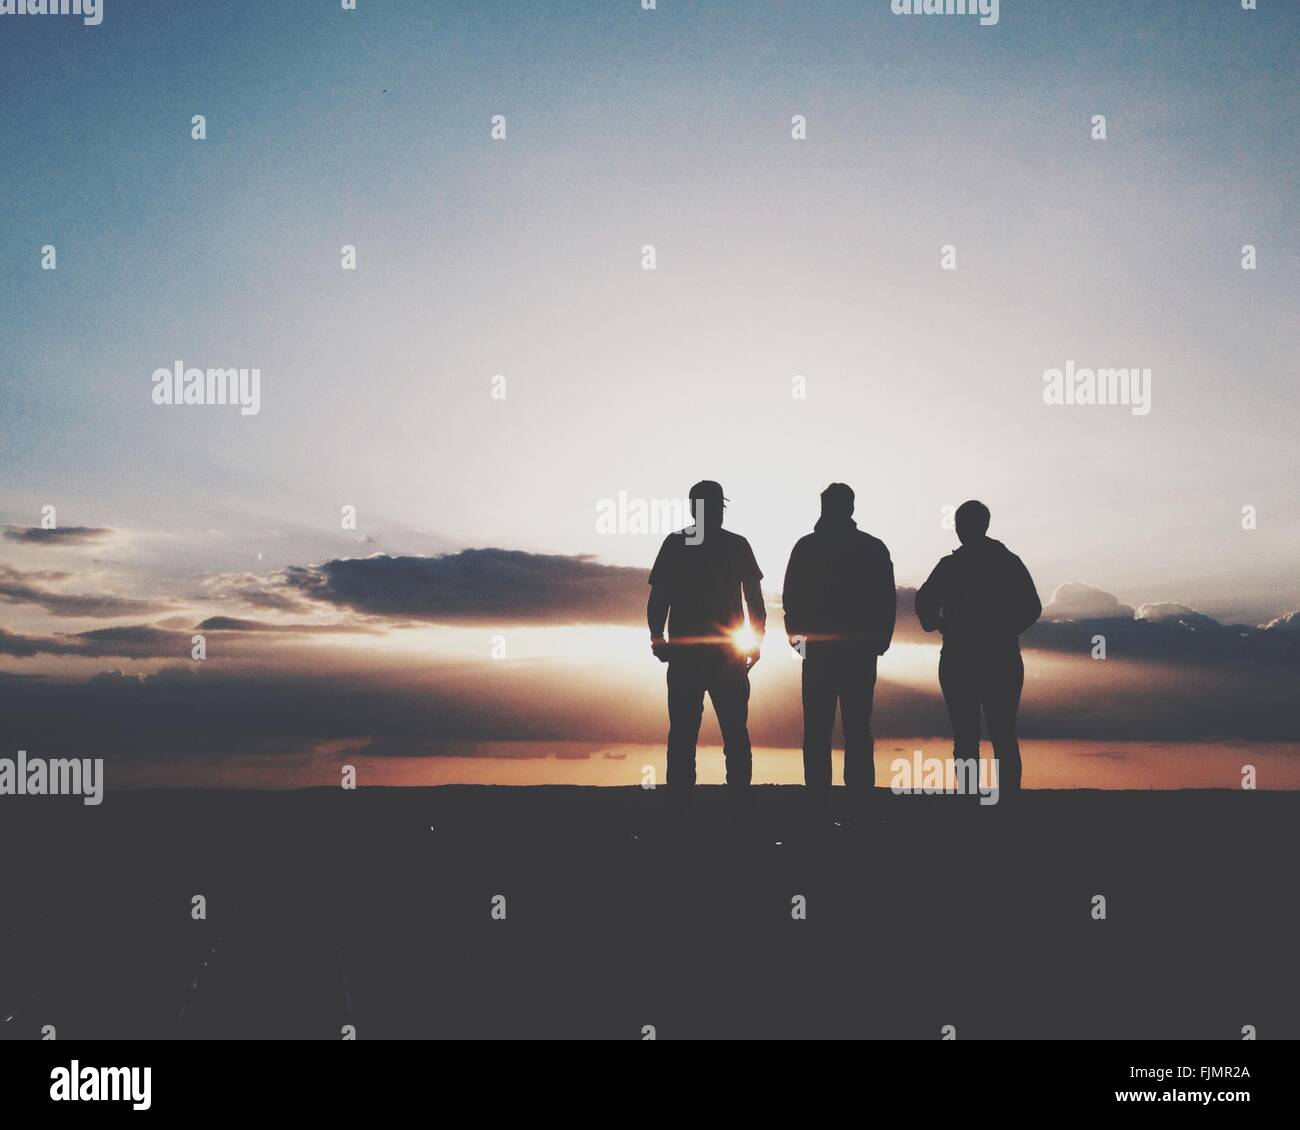 Silhouette Of Three People Standing At Sunset - Stock Image